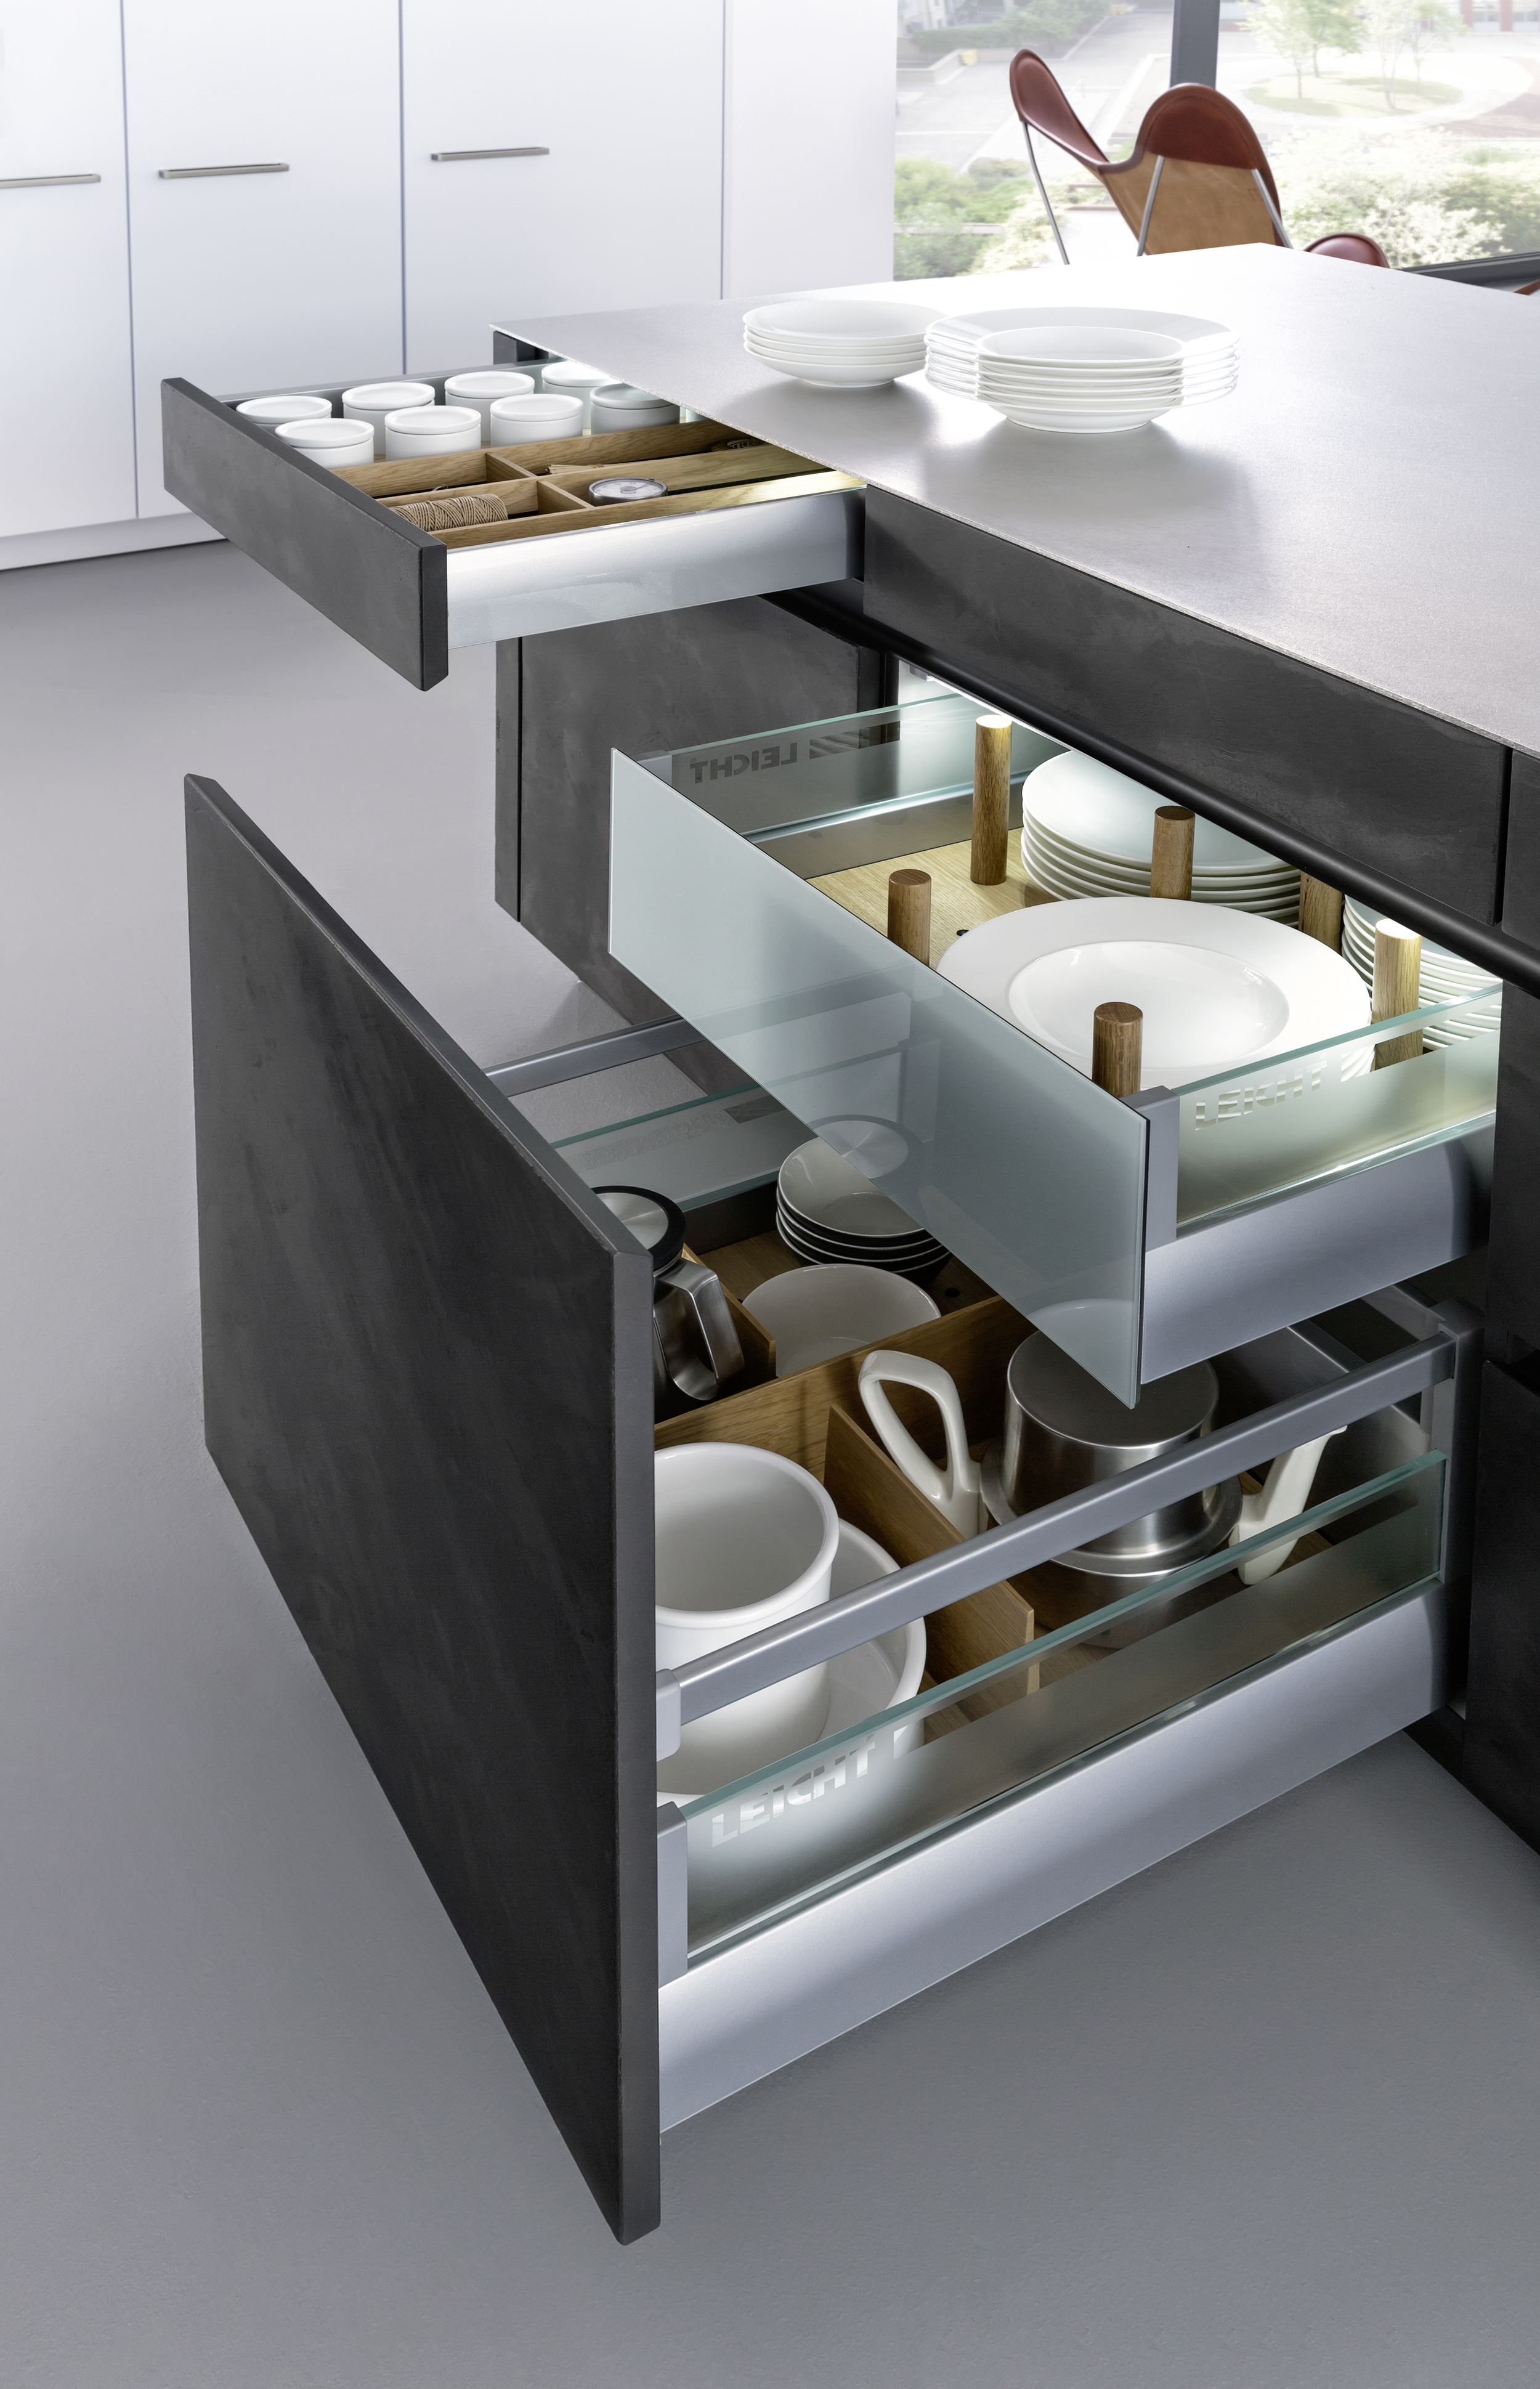 Contour Kitchens Cheltenham - Drawer pull outs